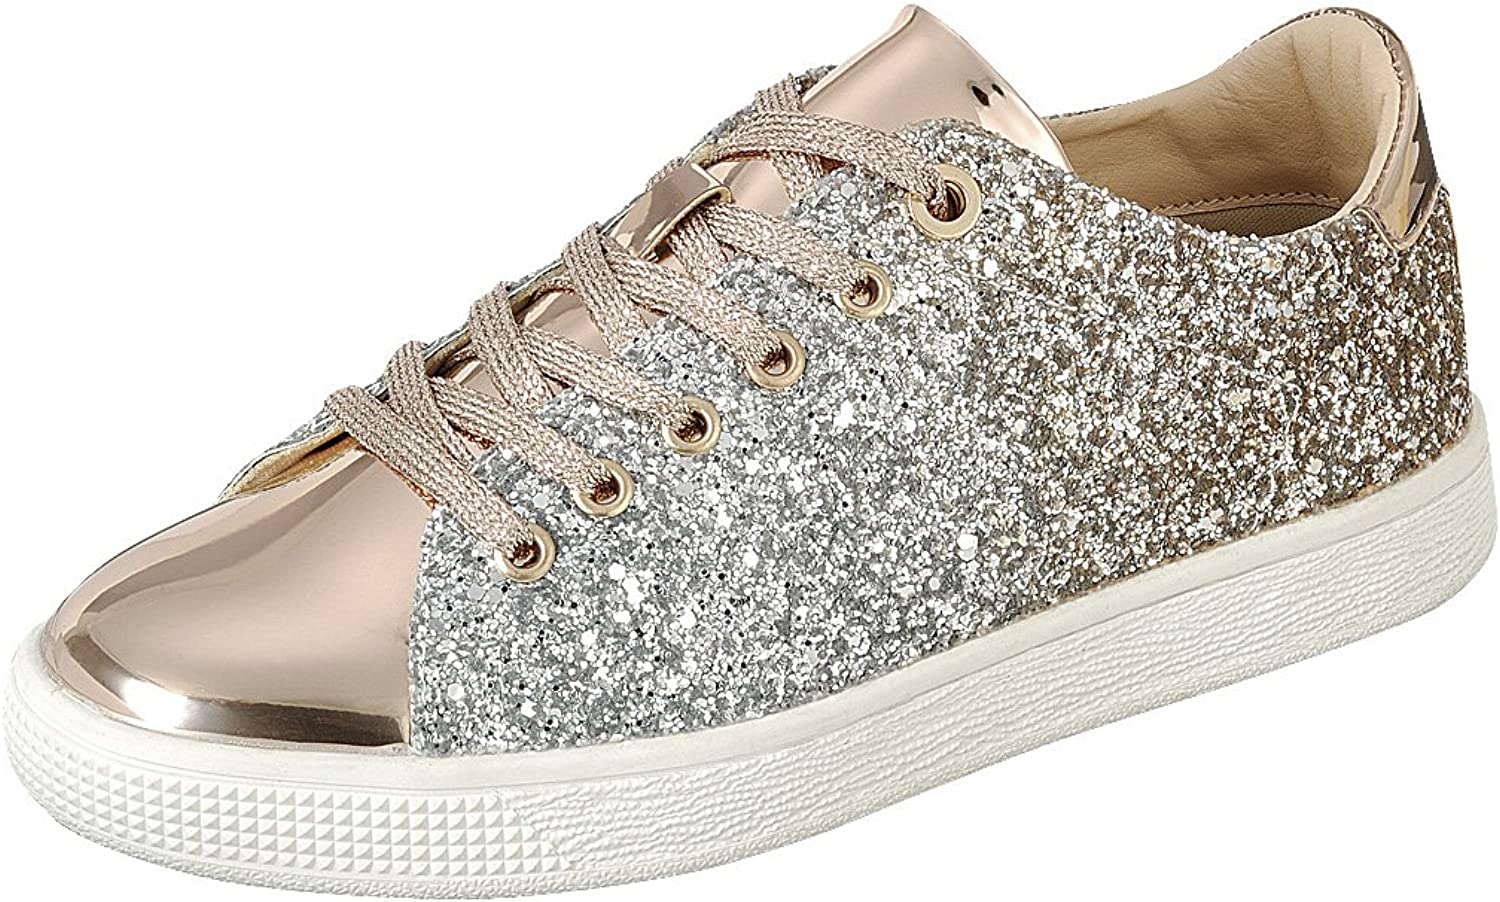 Cambridge Select Women's Lace-up Closed Round Toe Ombre Glitter Flatform Fashion Sneaker